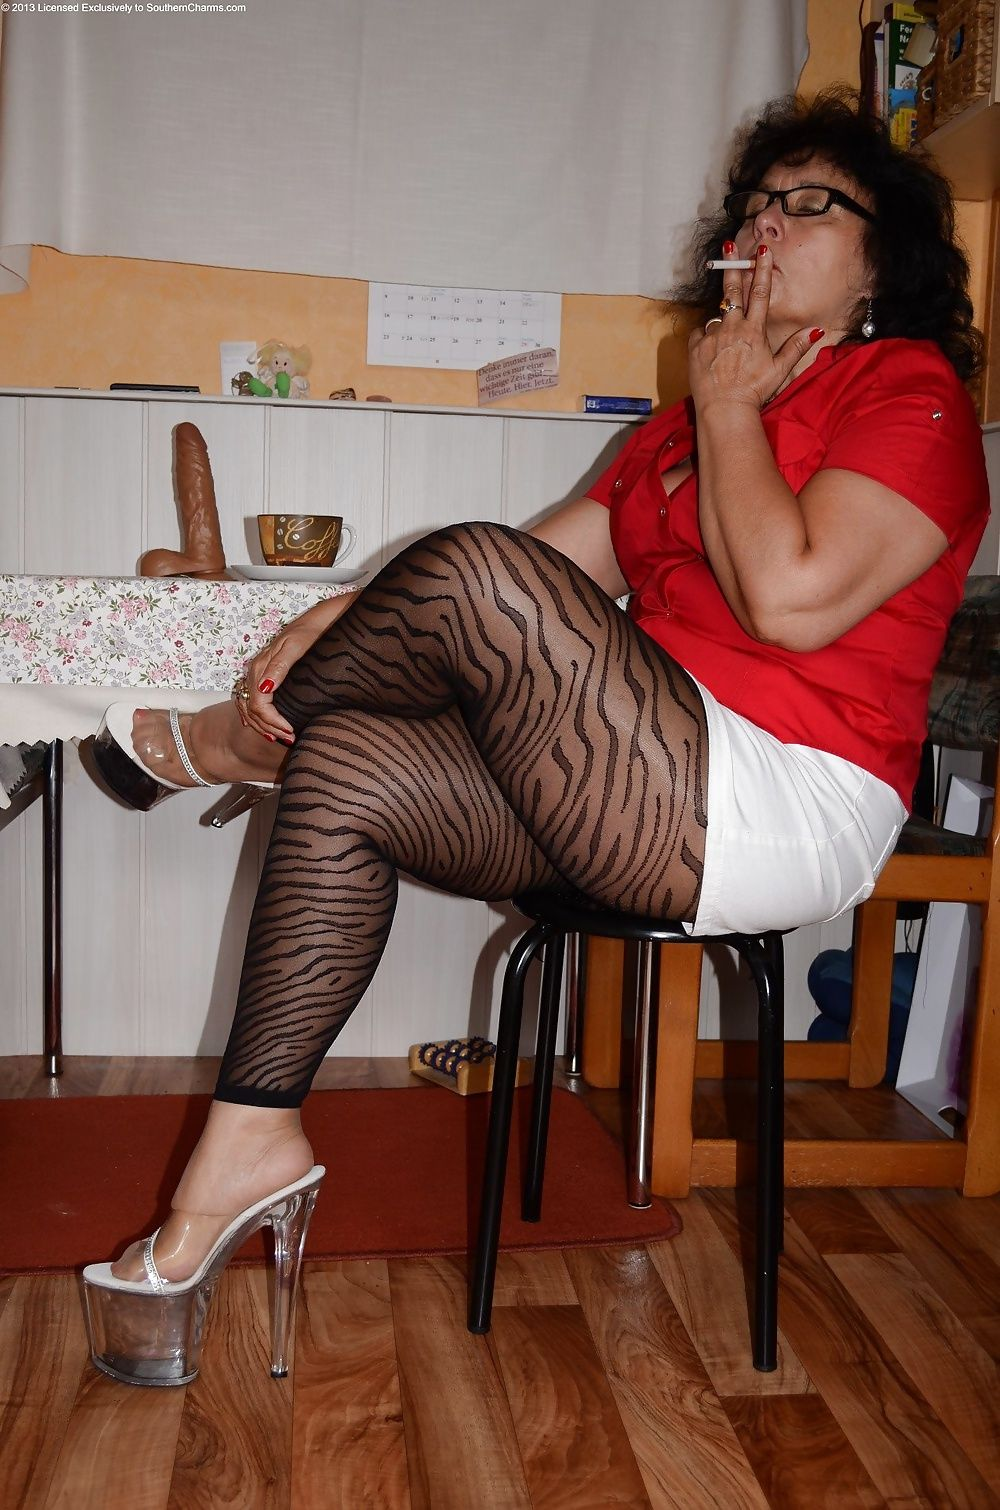 gallery | bbw mature | pinterest